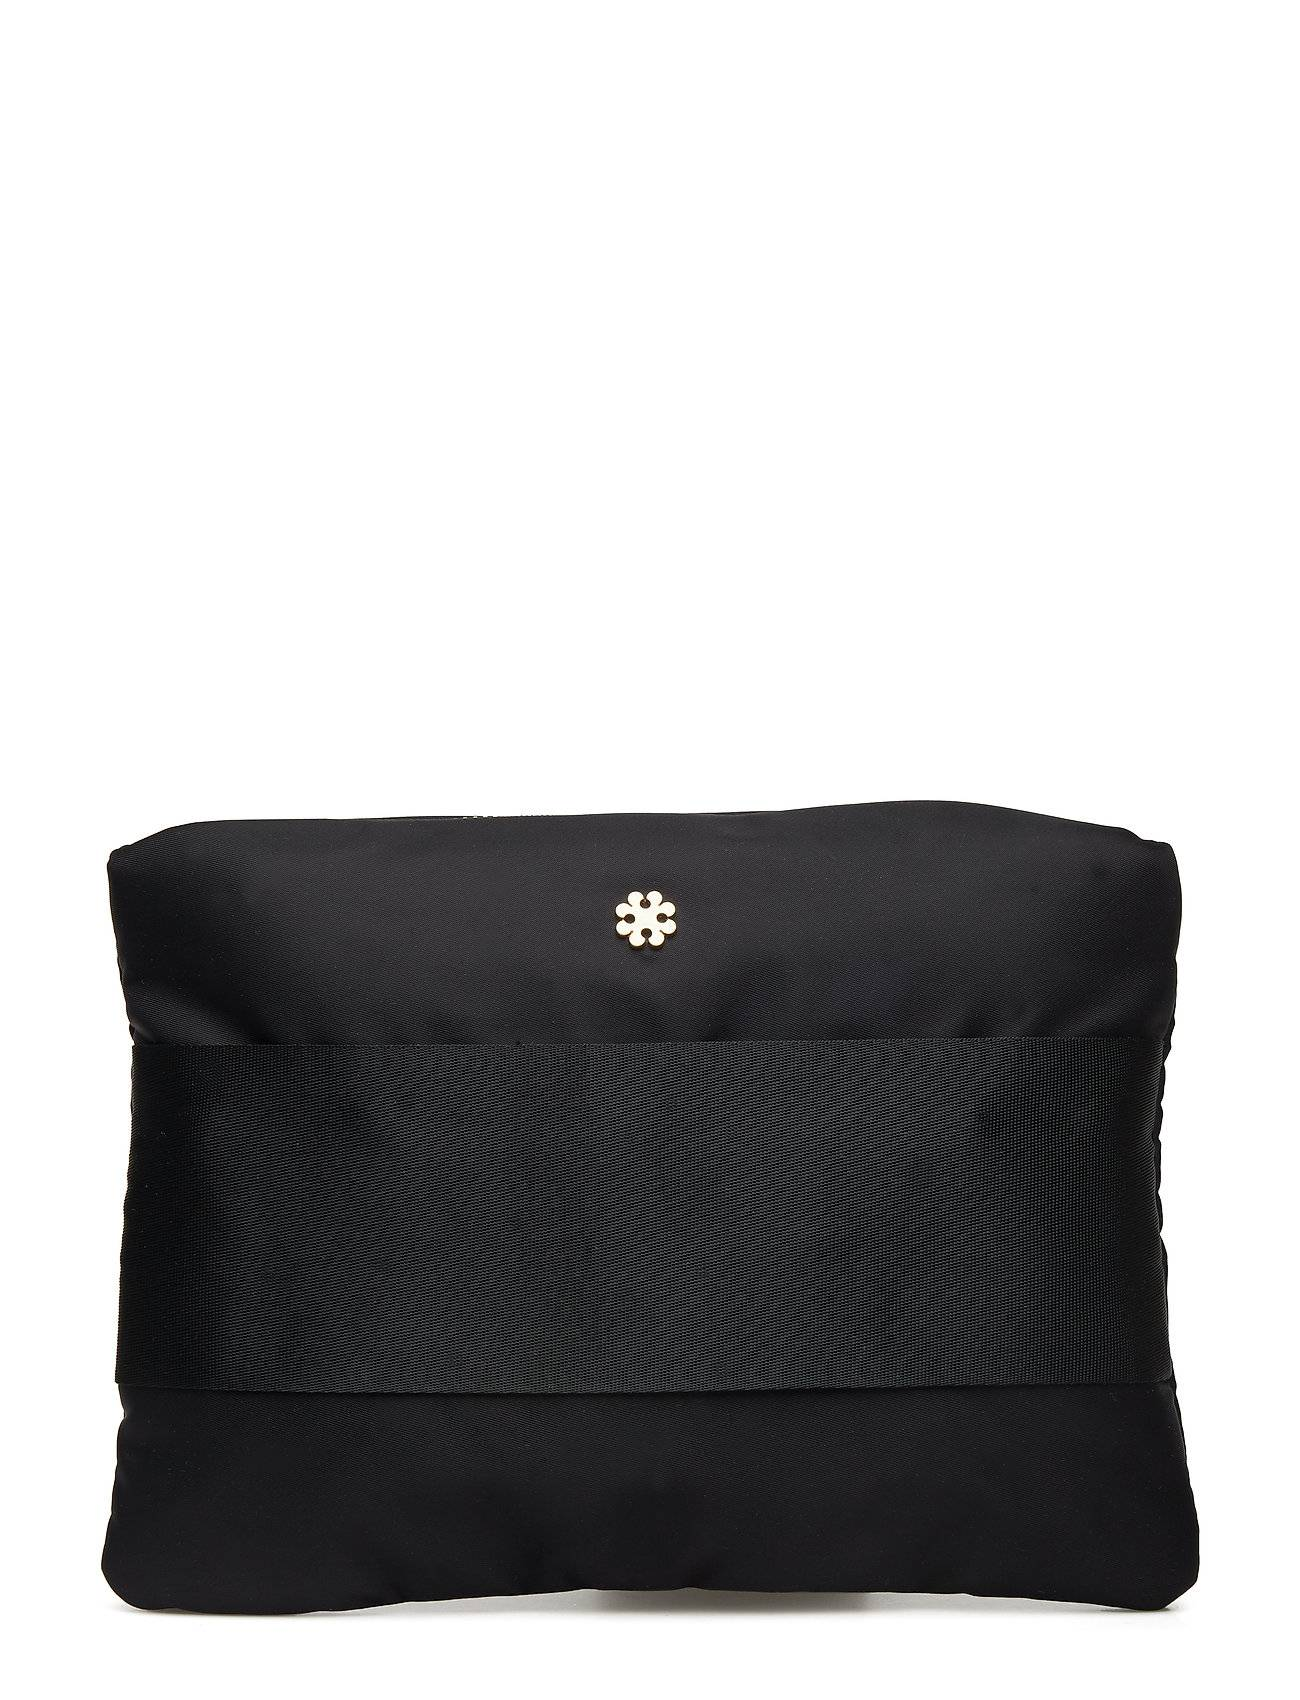 DAY et Day Band Clutch